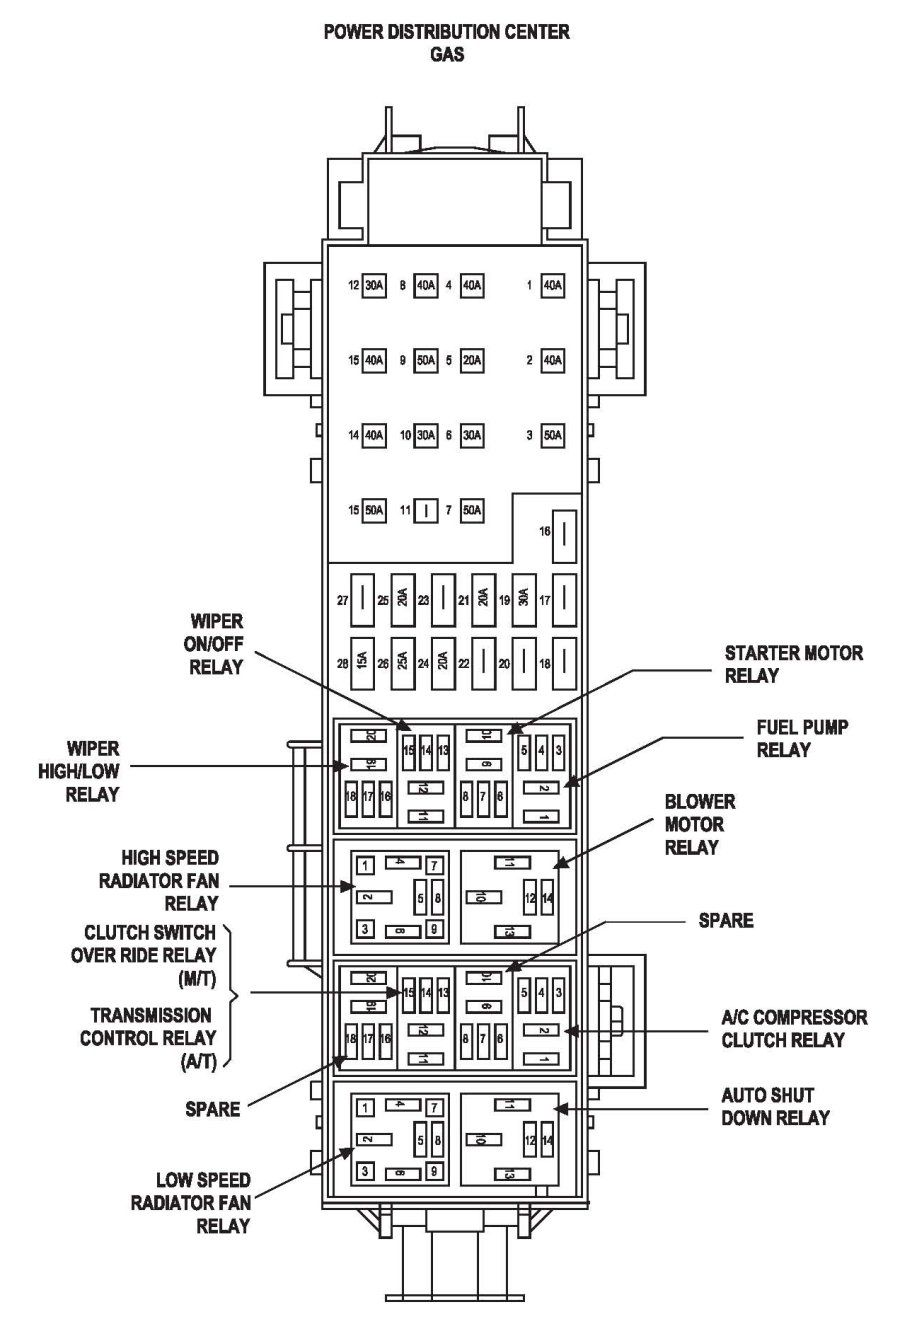 medium resolution of 2001 pt cruiser fuse box diagram wiring diagram 2007